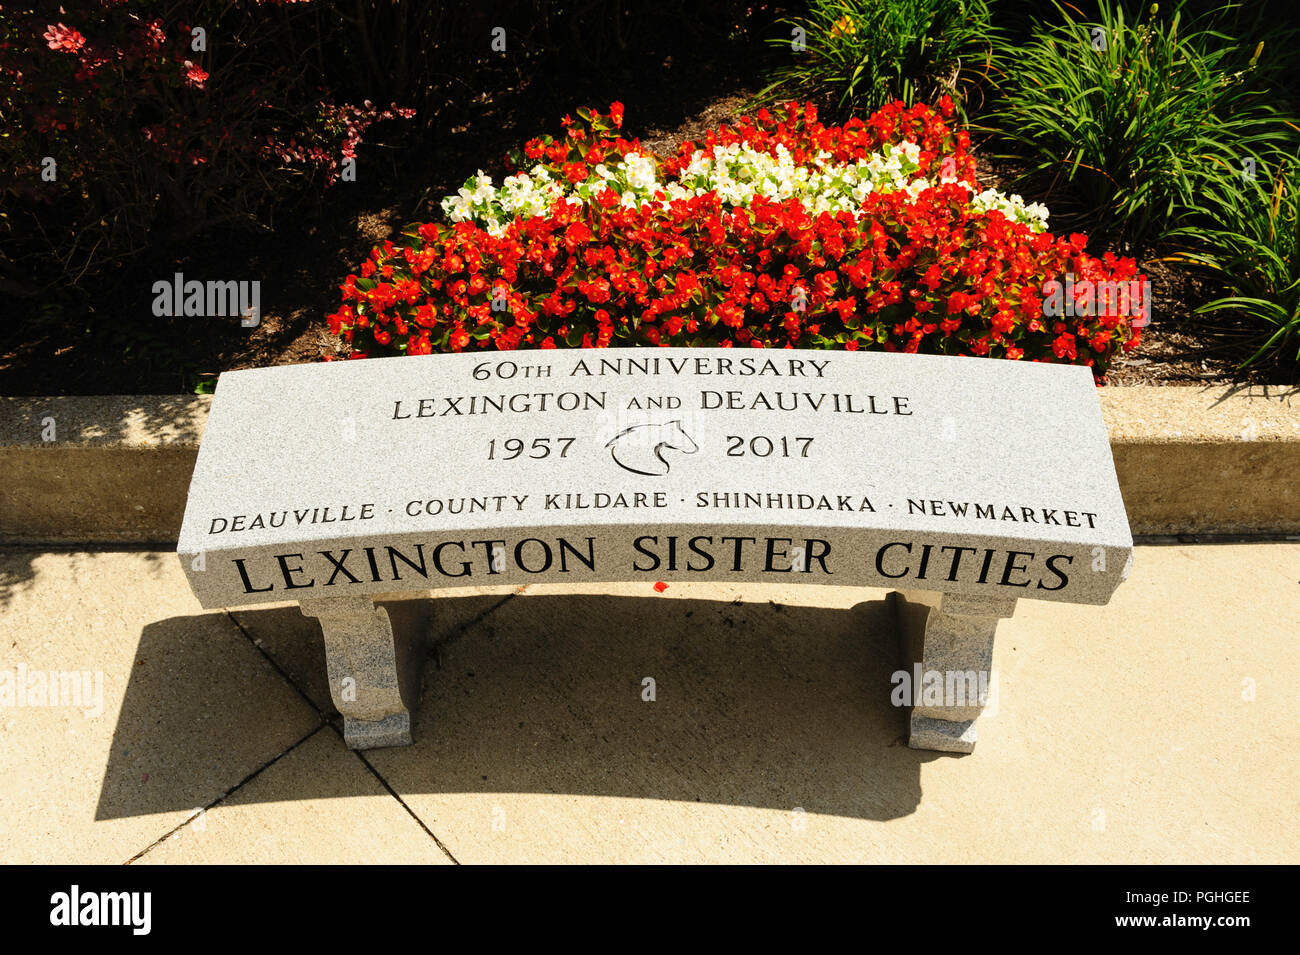 Lexington sister cities with Deauville, County Kildare, Shinhidaka, and Newmarket - Stock Image